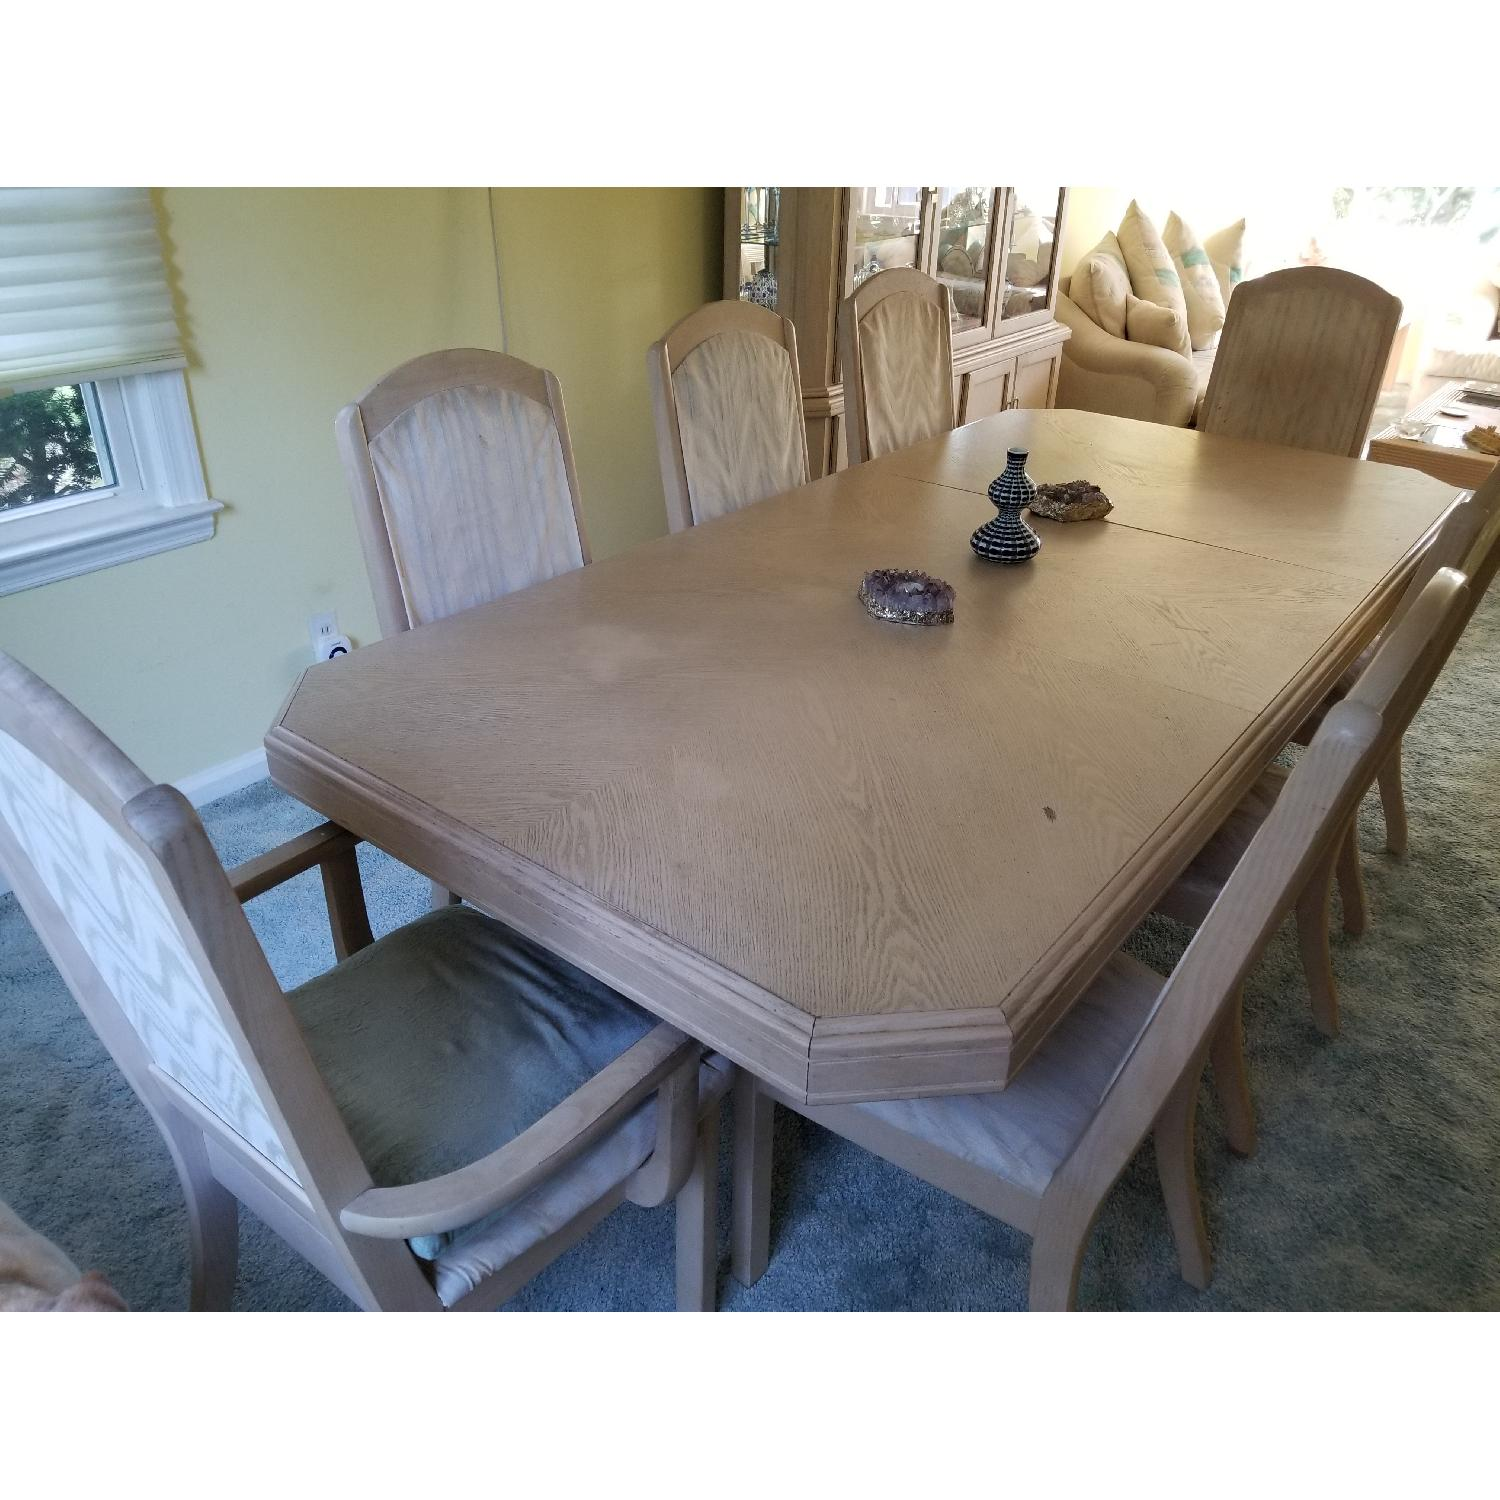 Seaman's Furniture Whitewash 9-Piece Dining Set - image-1